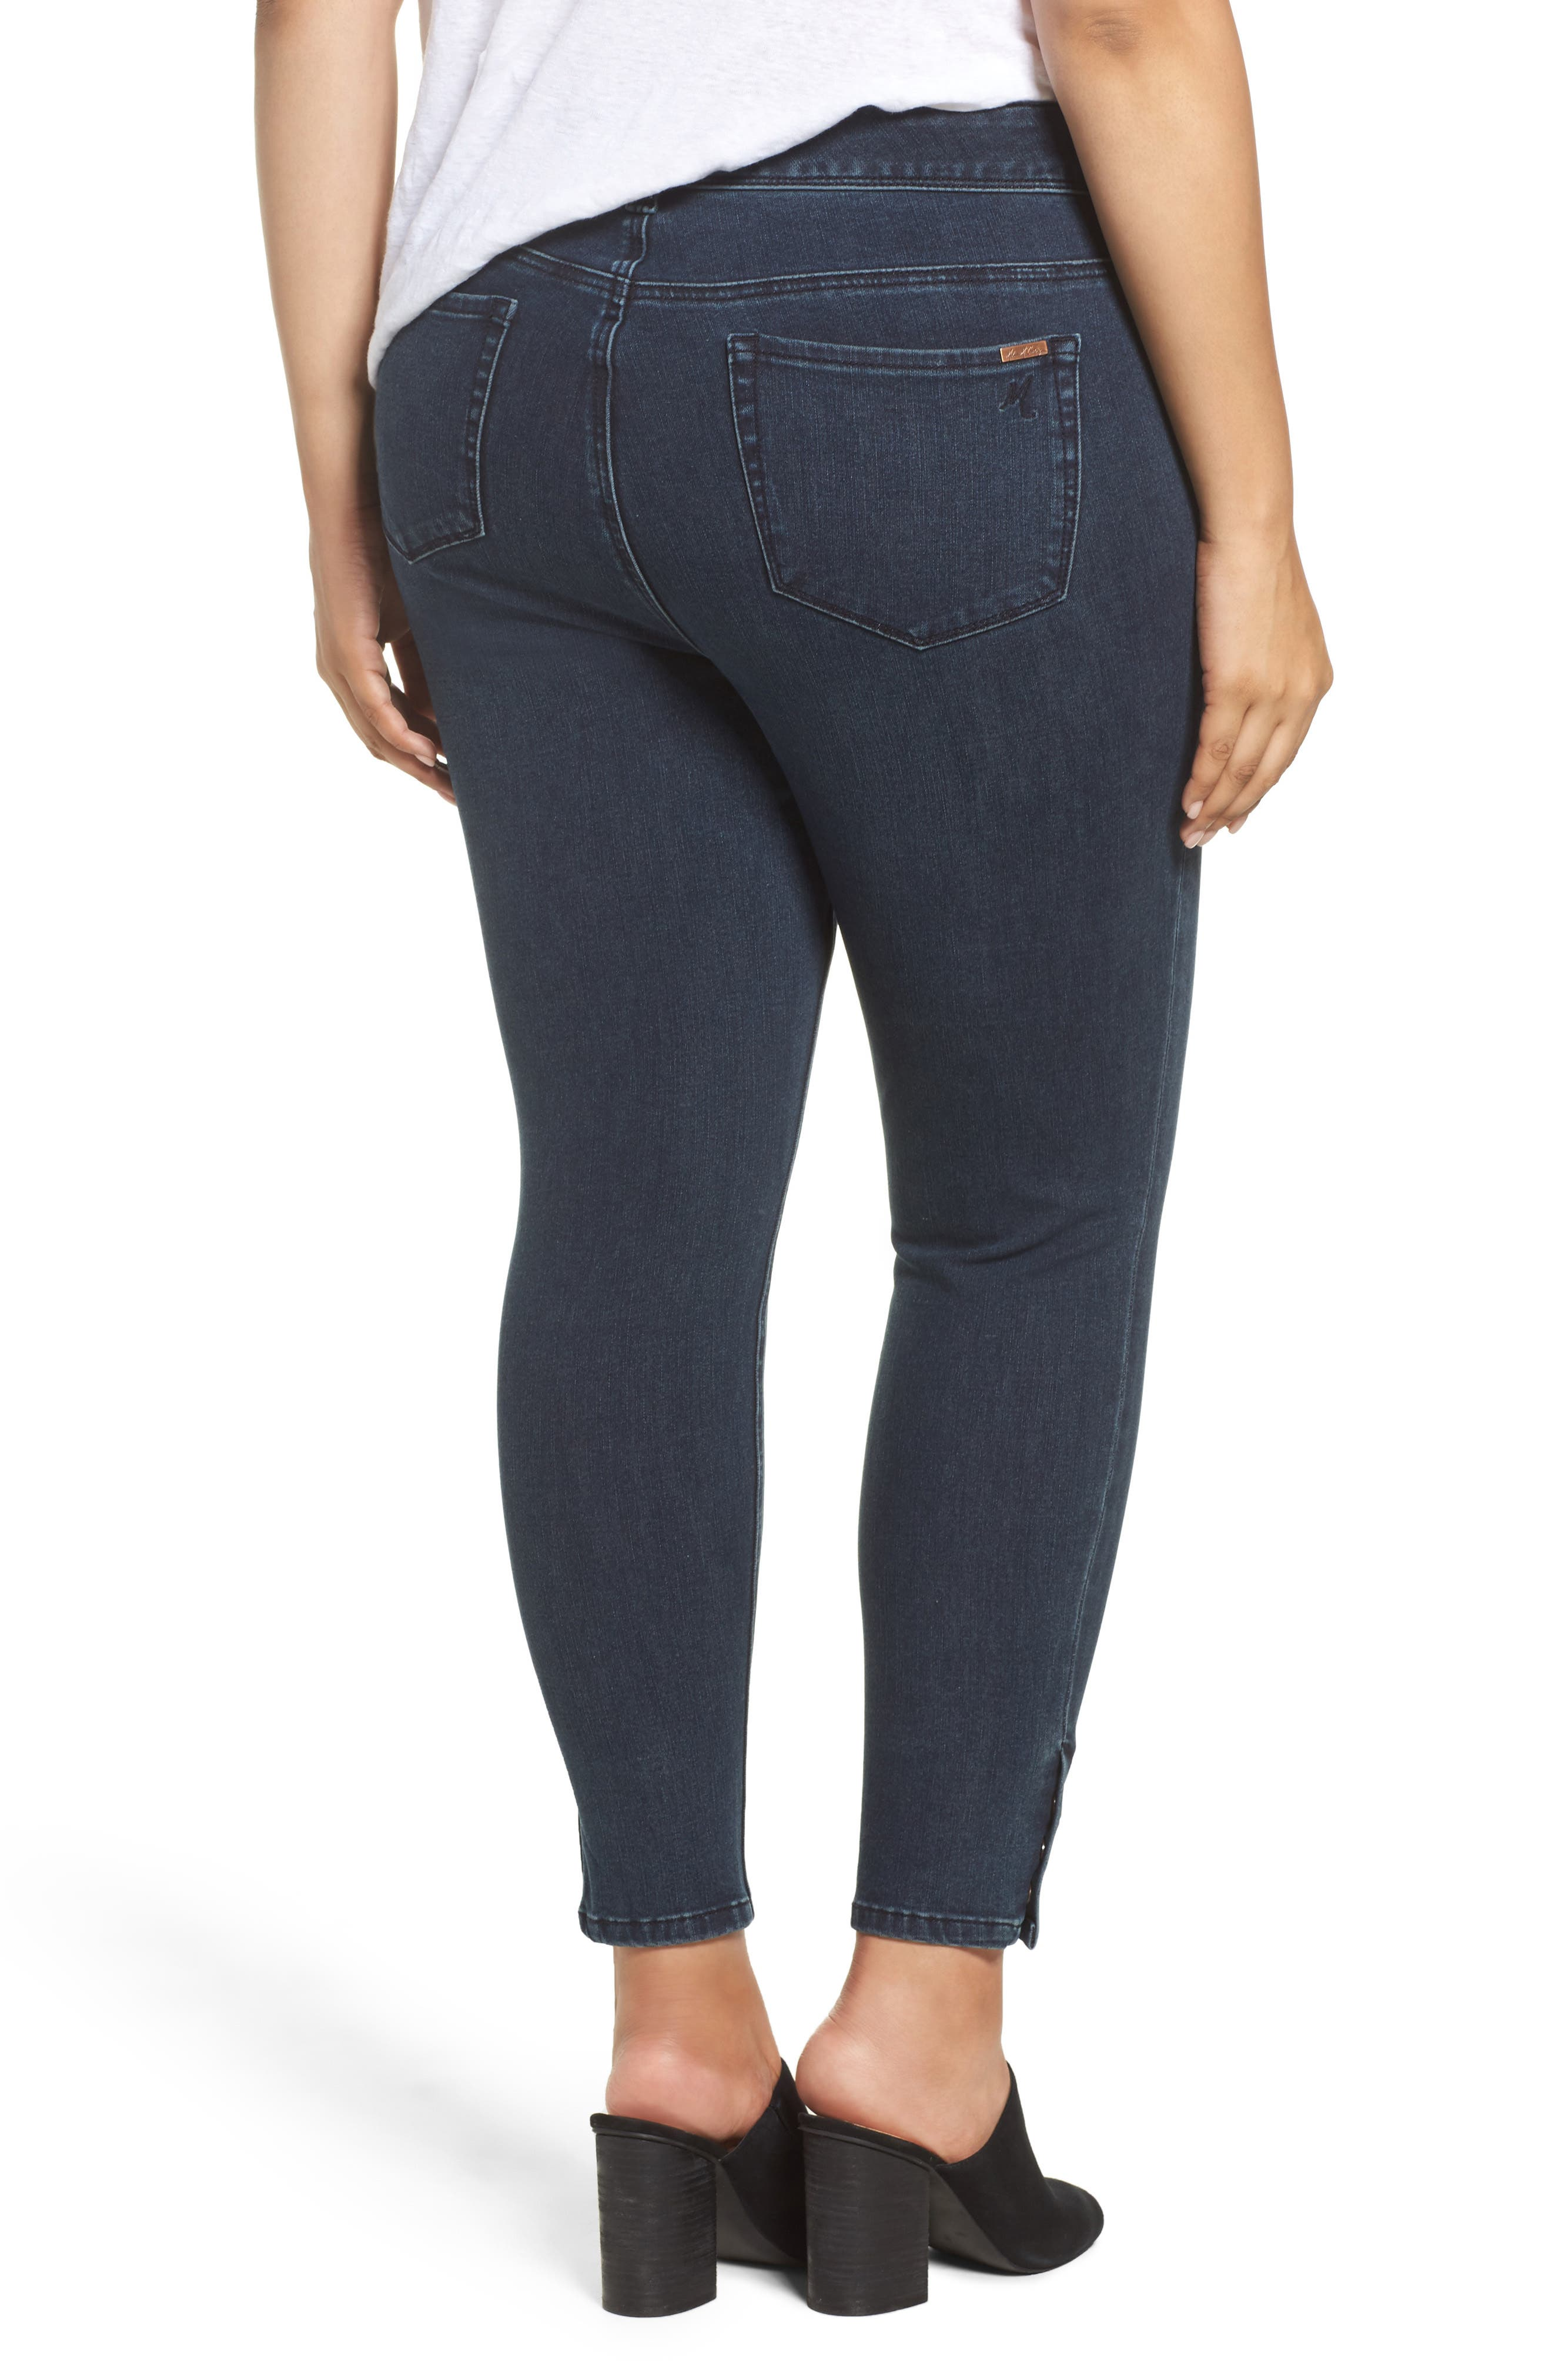 Alternate Image 2  - Melissa McCarthy Seven7 Snap Hem Pencil Jeans (Sasha) (Plus Size)